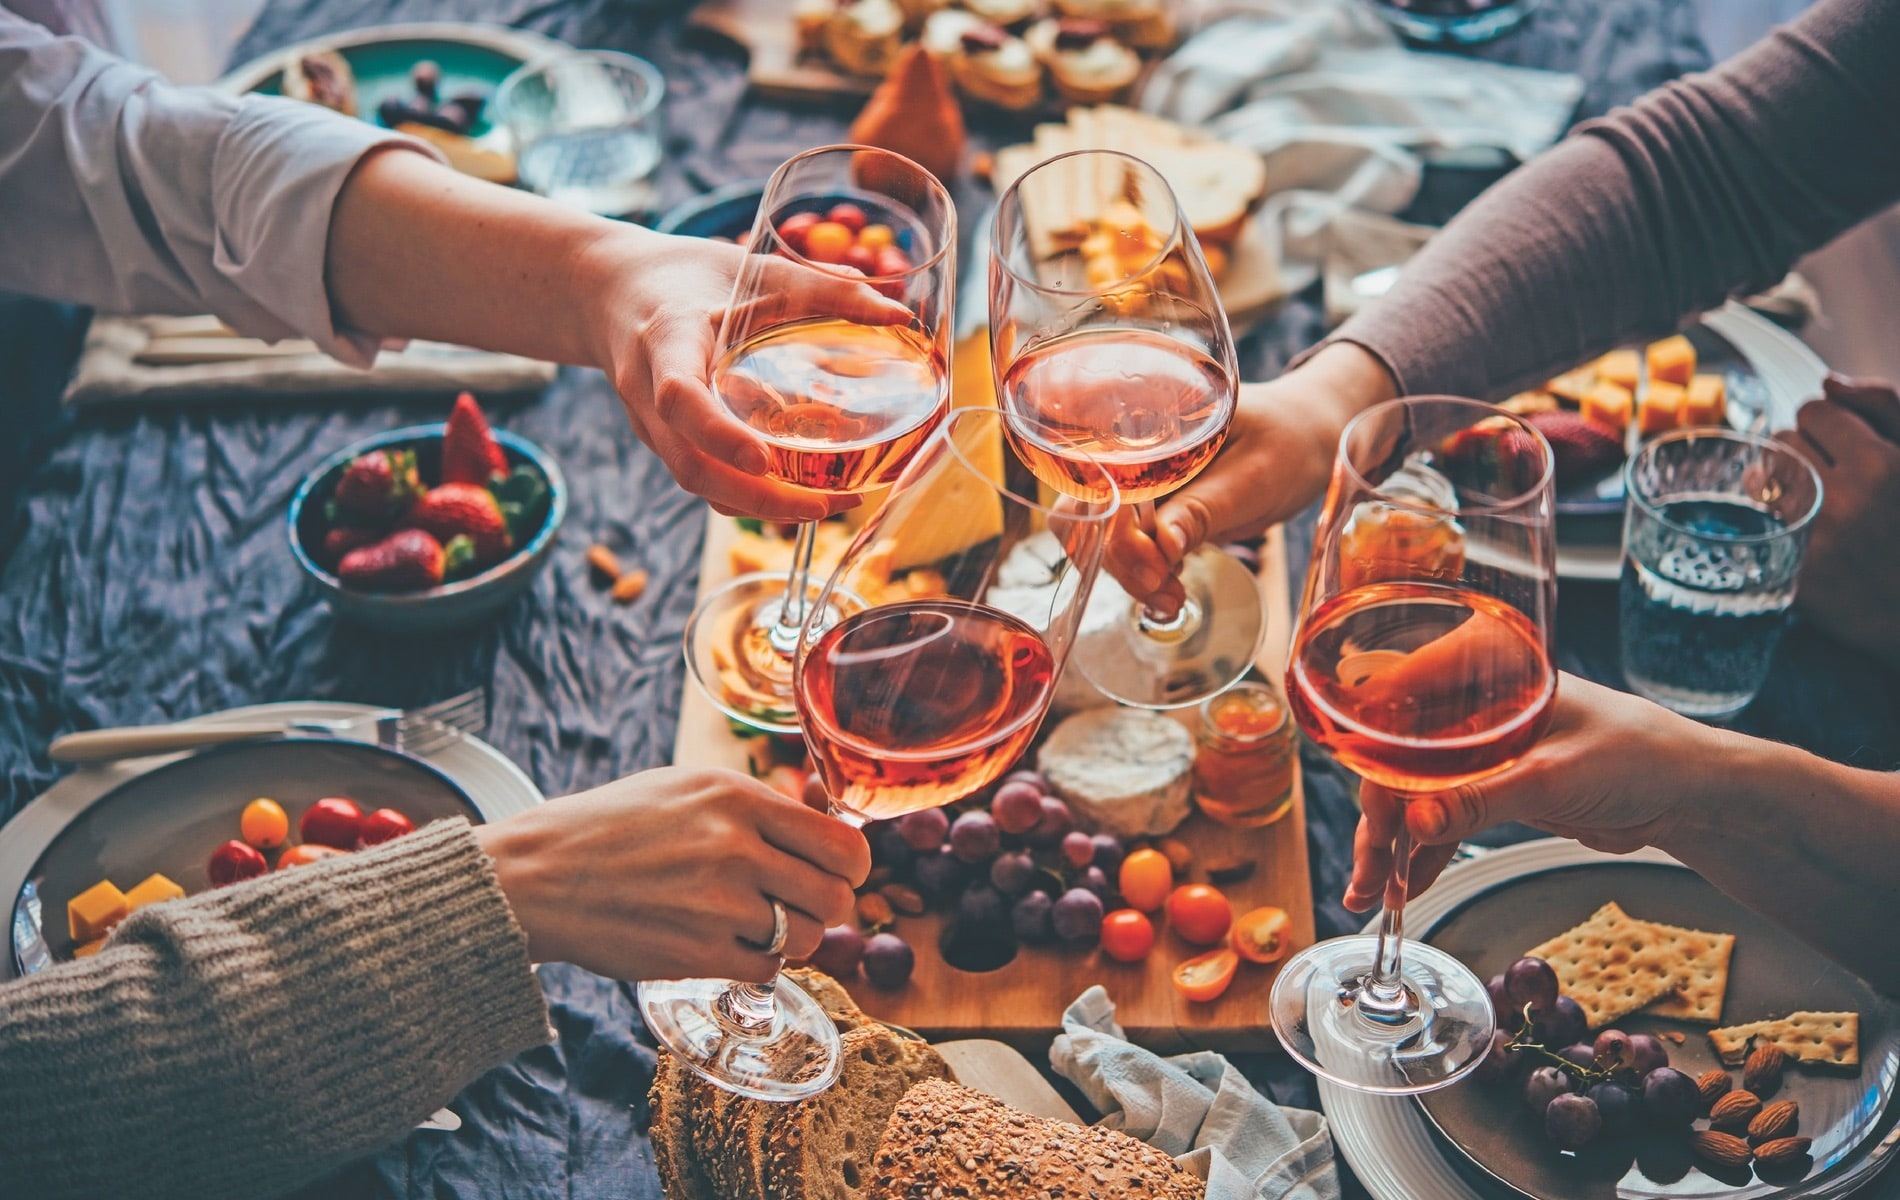 VIE Magazine, Cindy Garrard Column, Glasses of rose wine seen during a friendly party of a celebration